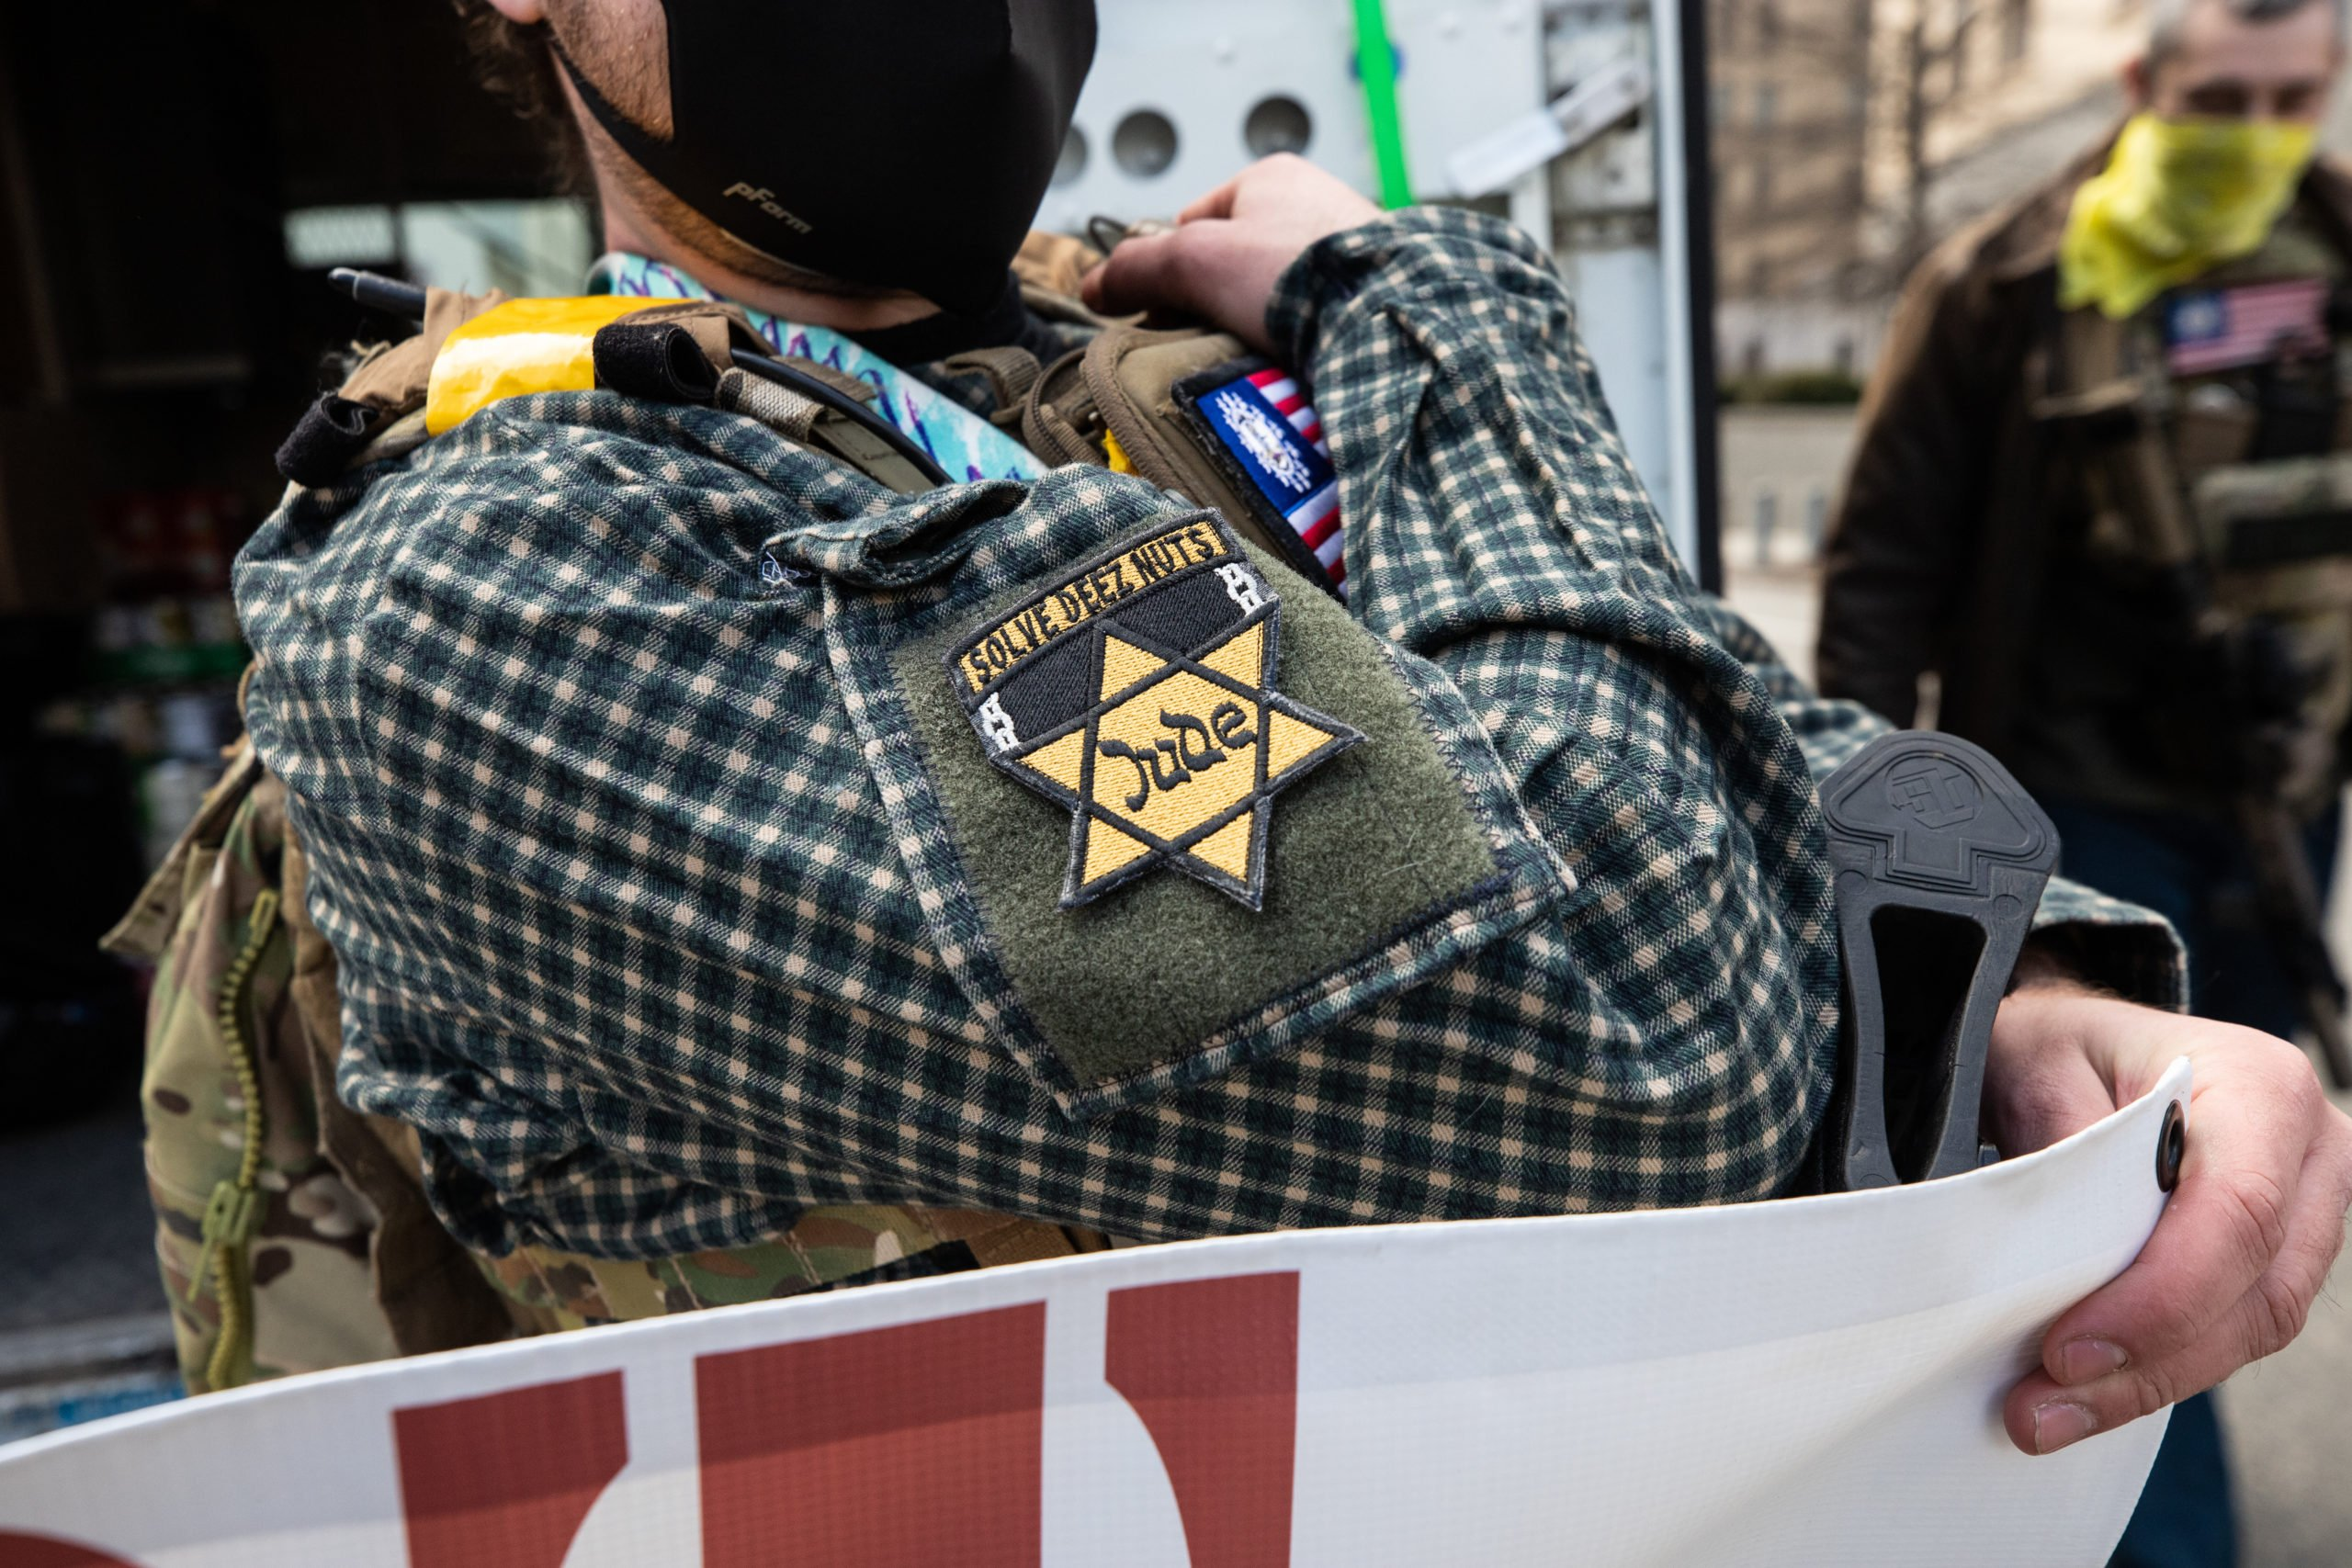 An armed man with the Virginia Mutual Assistance Group wore a patch to honor his Jewish ancestors as he participated in a food drive in Richmond, Virginia on January 18, 2021. (Kaylee Greenlee - Daily Caller News Foundation)